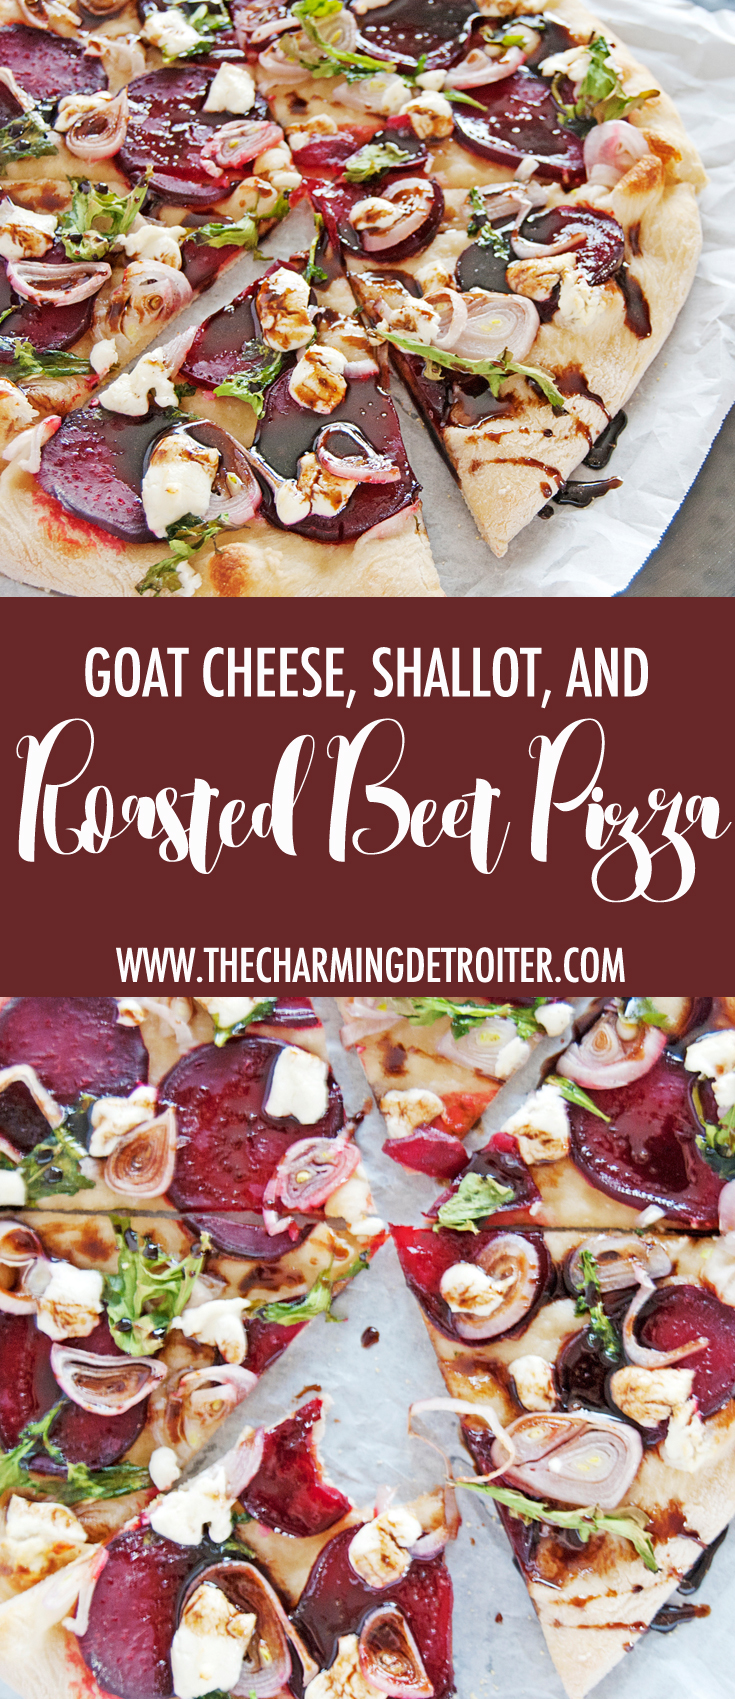 This delicious beet pizza features beautifully oven roasted beets, creamy goat cheese and shallots, paired with a tangy balsamic honey vinaigrette.